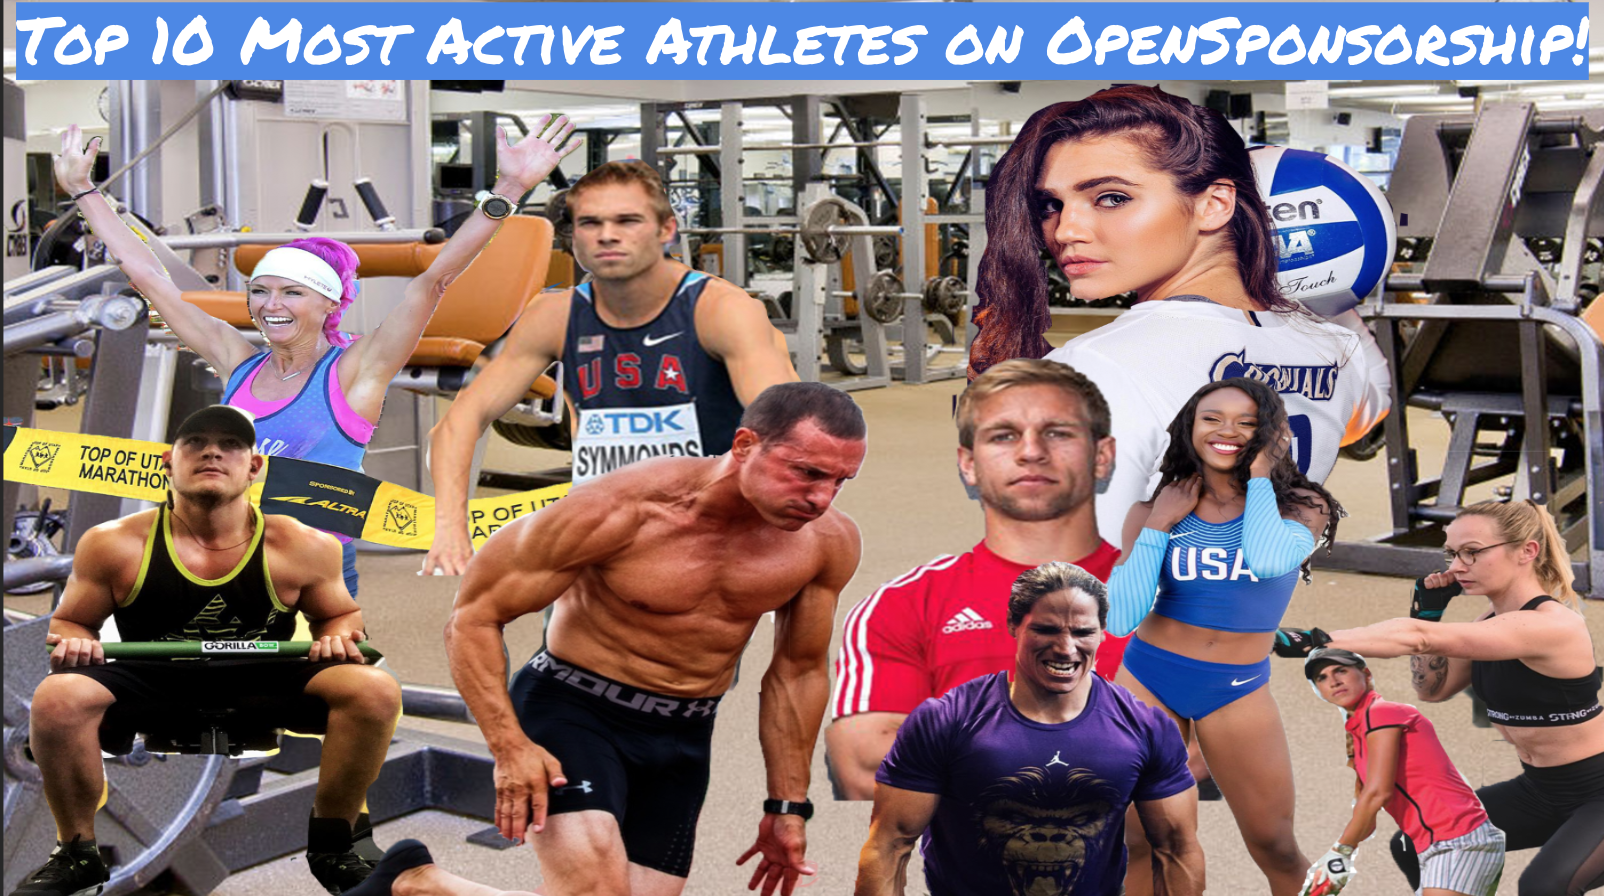 @brandonzingale's cover photo for '10 Most Active Athletes on OpenSponsorship'